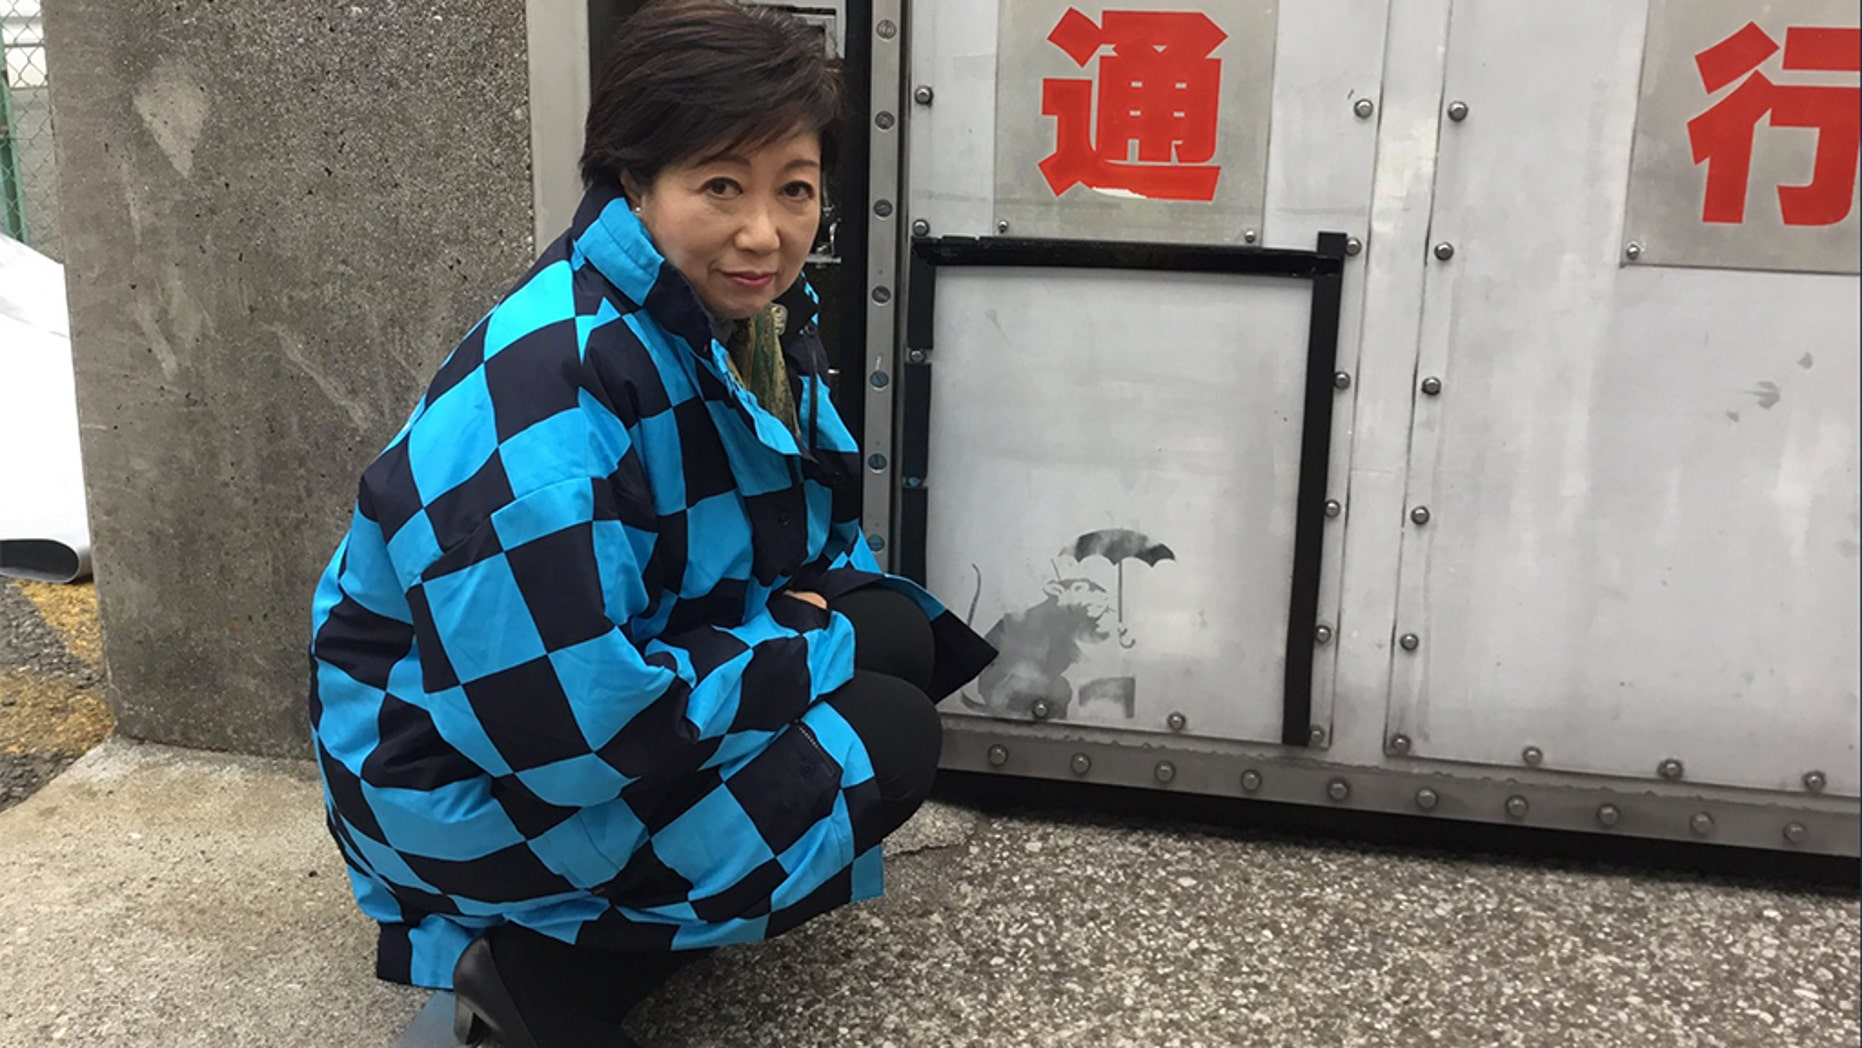 Government officials from Tokyo, including Governor Yuriko Koikee, pointed out the work's similarity to one of Banksy's other famous works, which also shows a rat with an umbrella.